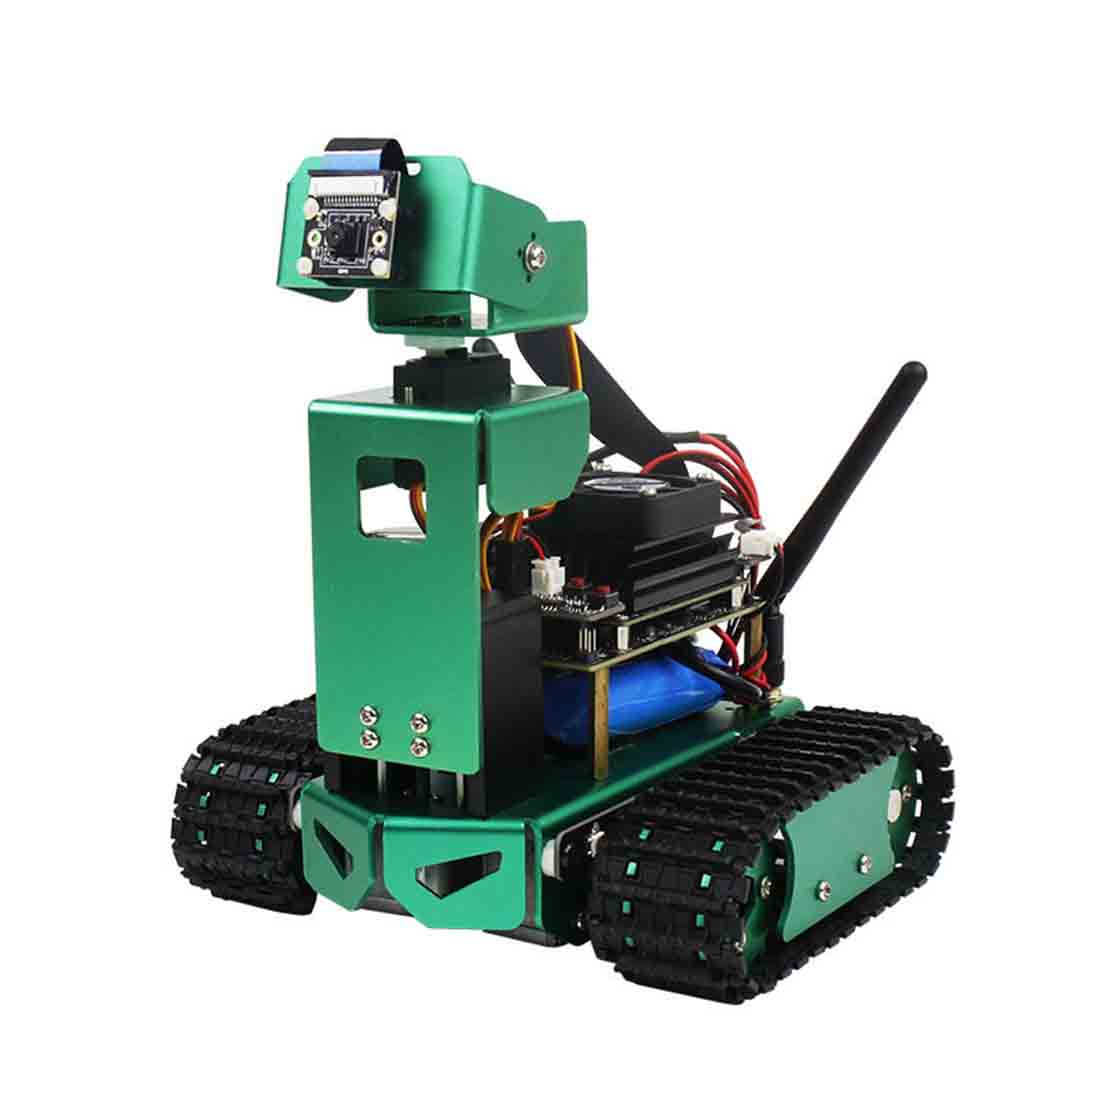 Artificial Intelligence Car DIY 2DOF Robot Car Kit For Jetson Nano (Fixed Height) With /Without Development Board Birthdaty Gift